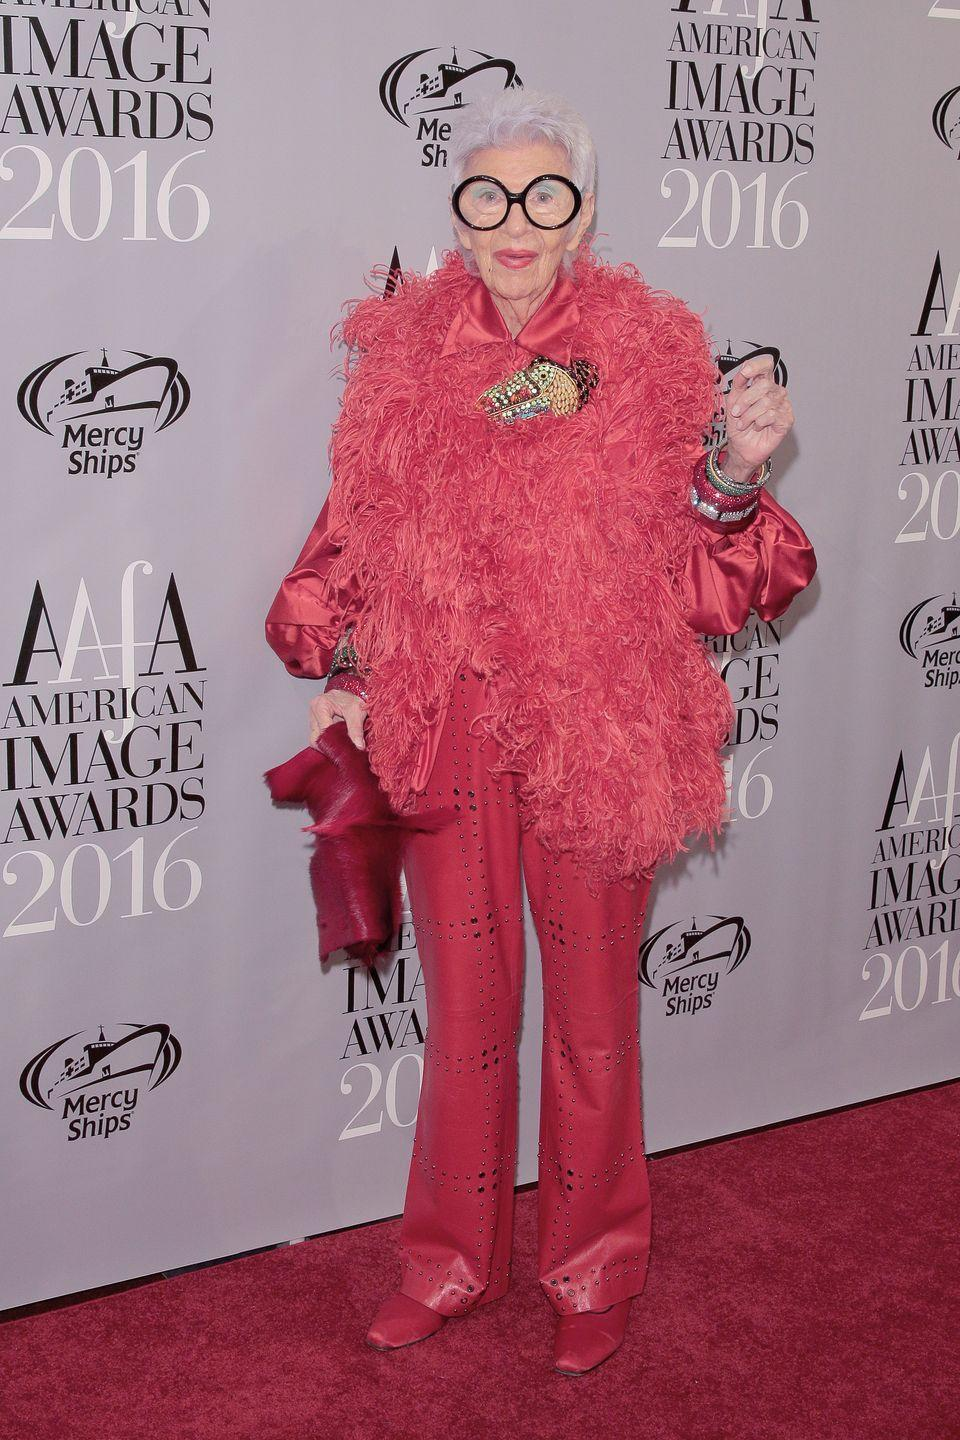 <p>Here, the lady in pink: Iris Apfel is wearing cut-out pink leather and a perfectly matching blouse, loafers, and fur coat.<br></p>